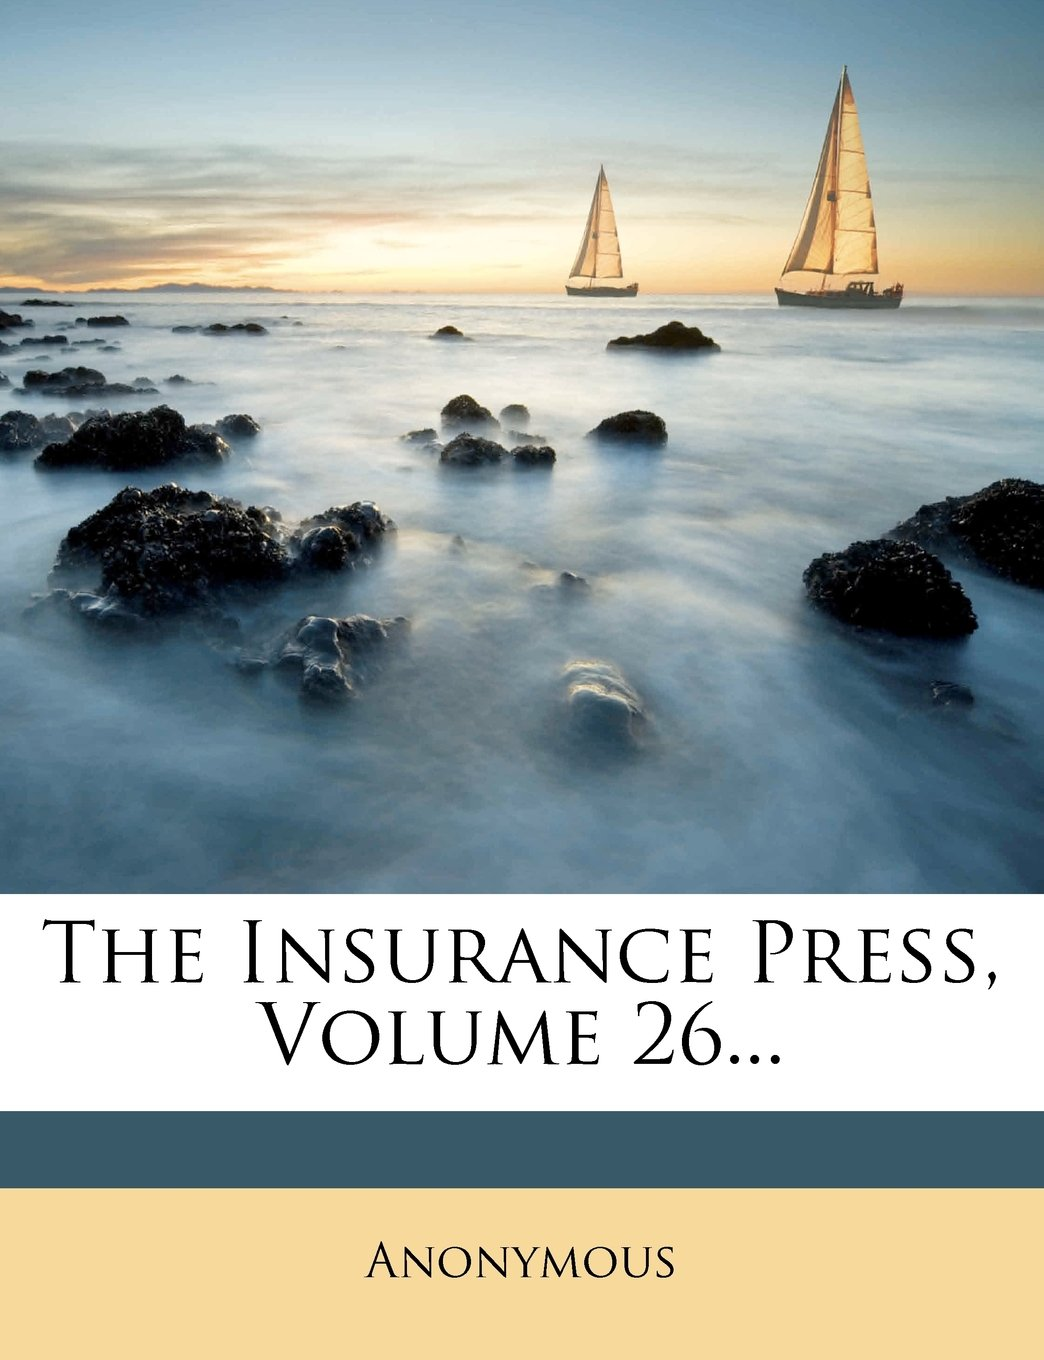 The Insurance Press, Volume 26... ebook